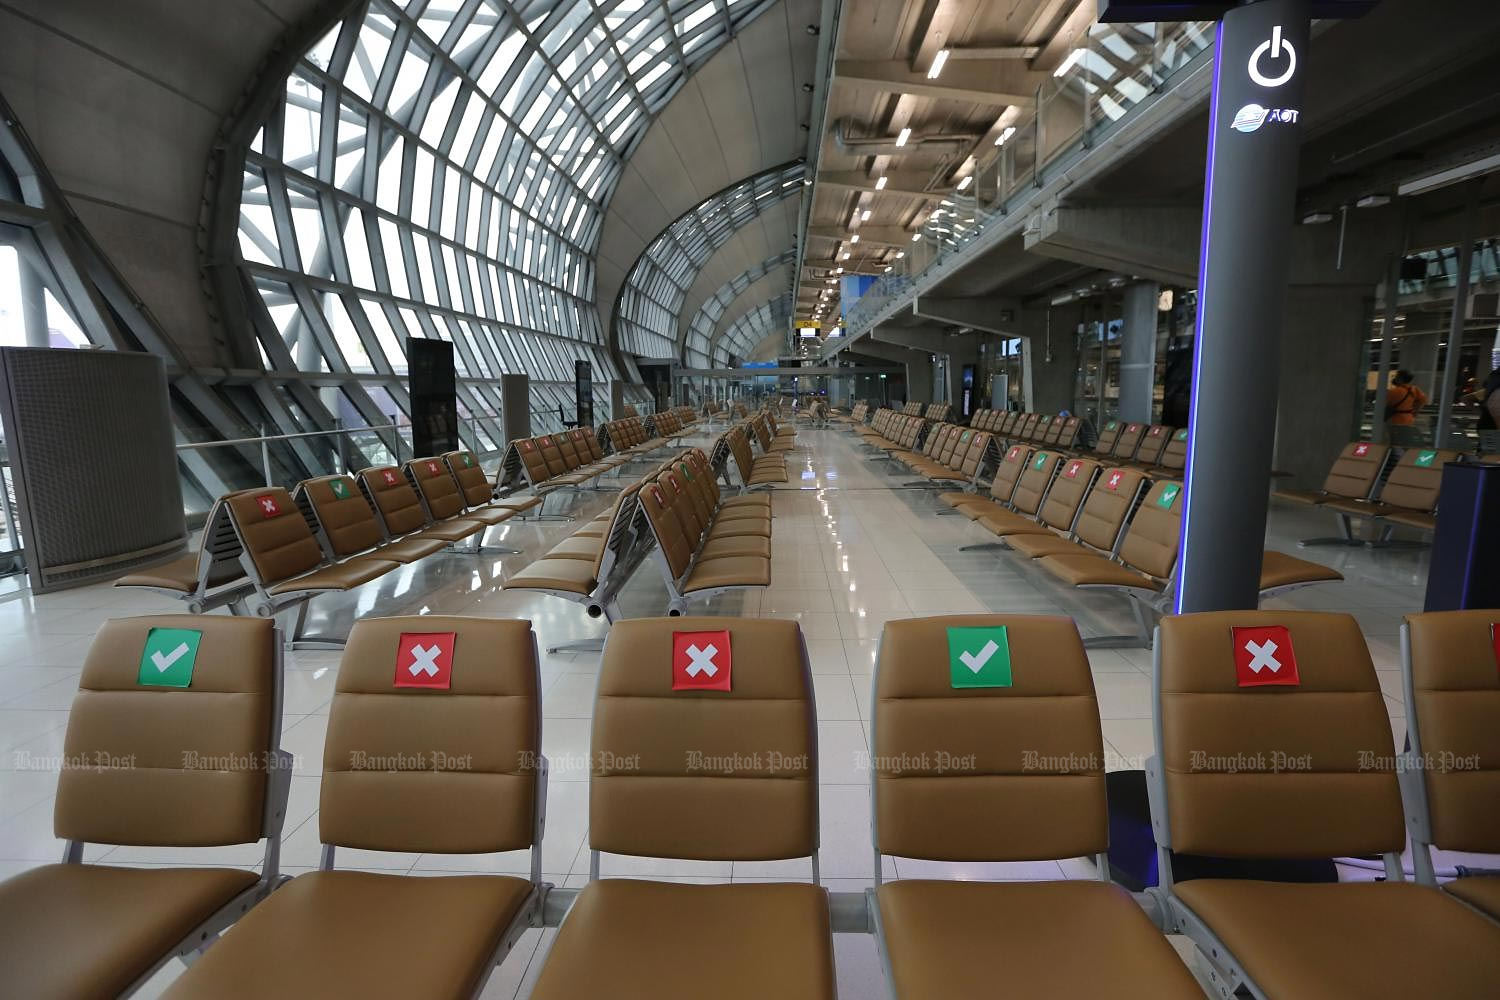 Suvarnabhumi airport's departure terminal is empty as the huge slump in passenger traffic continues. (Photo by Wichan Charoenkiatpakul)